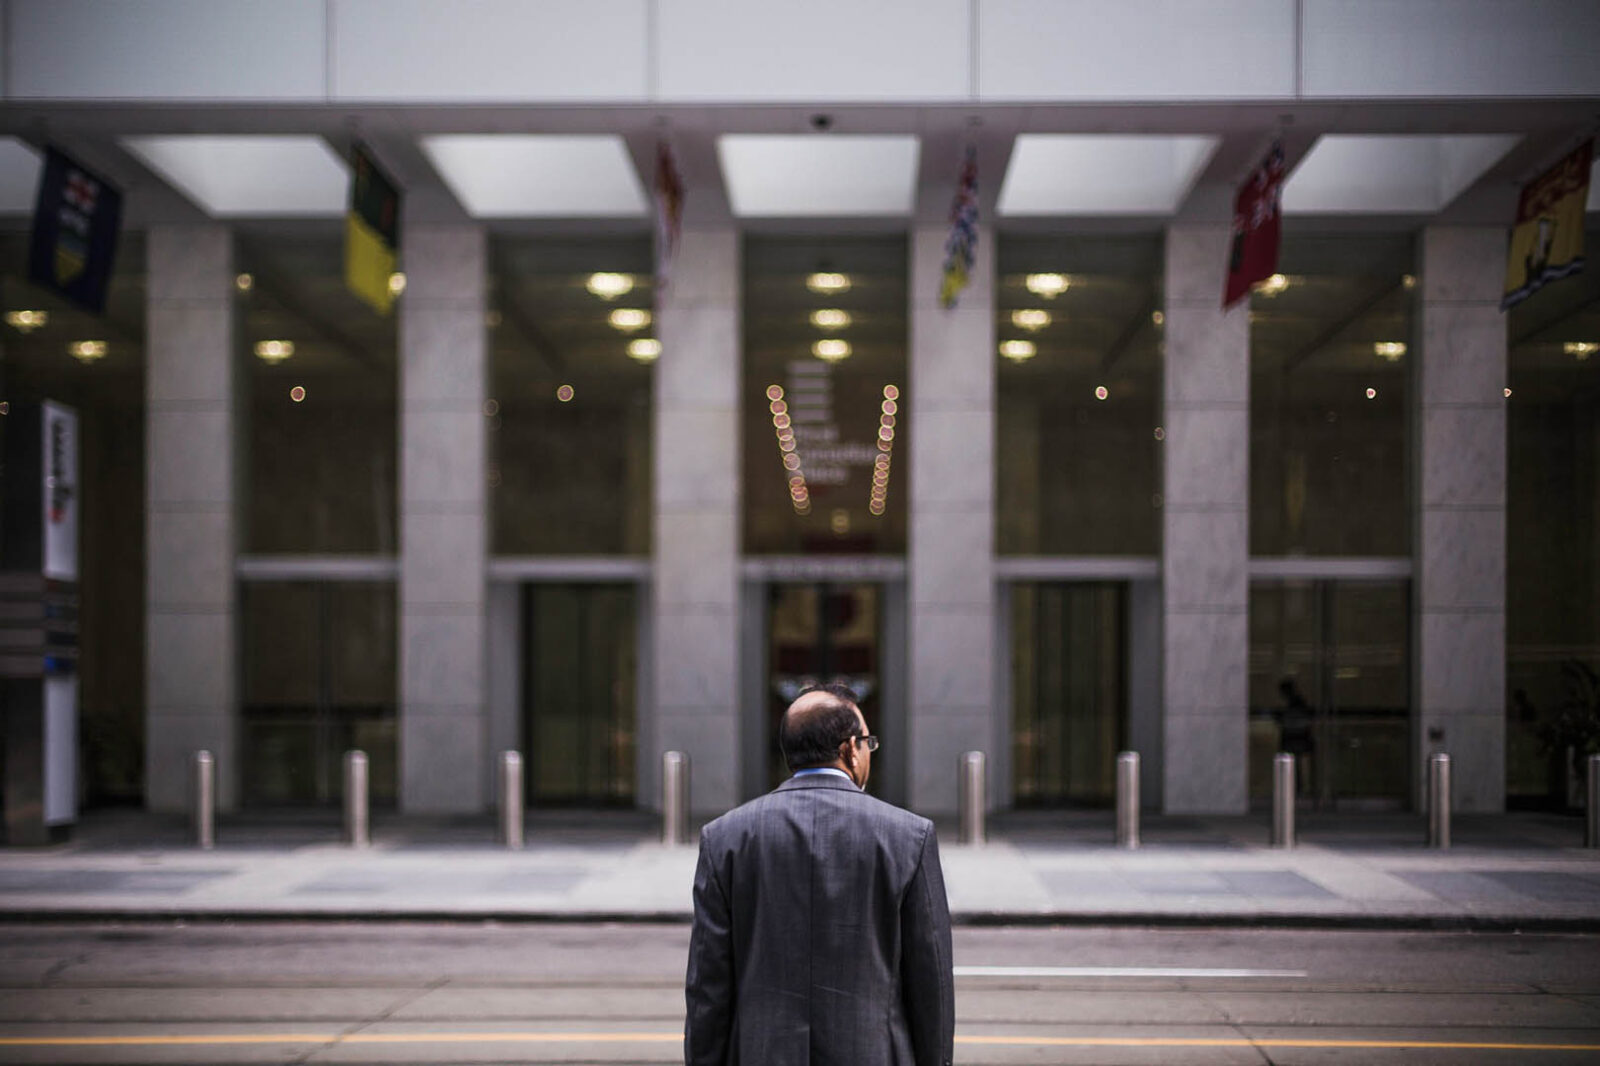 Office worker in front of building